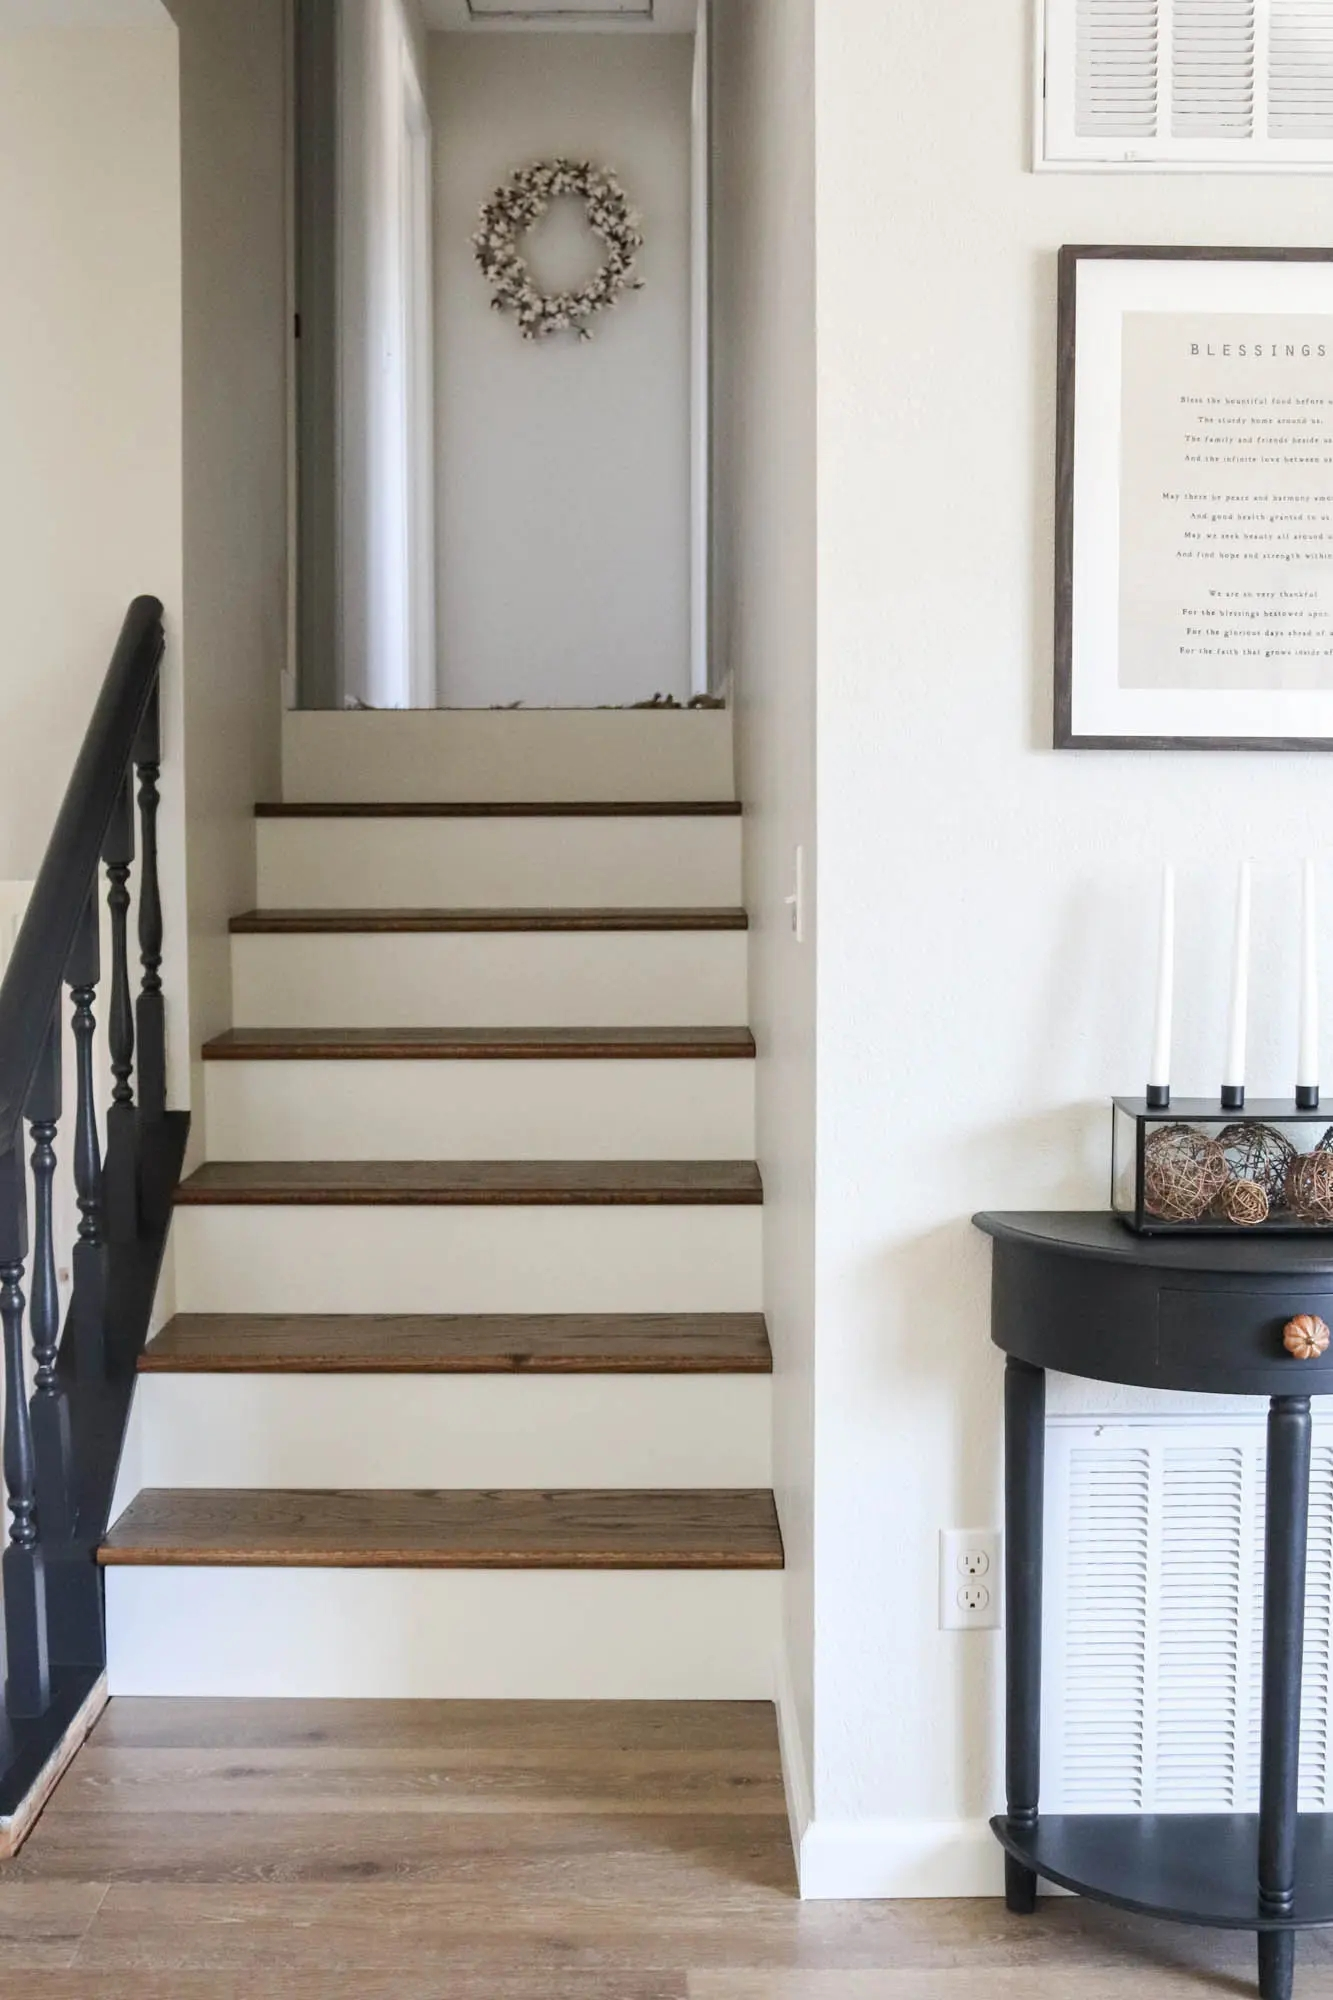 Diy Staircase Makeover The Wood Grain Cottage   Putting Wood On Stairs   Carpeted Stairs   Stair Risers   Concrete Stairs   Treads   Engineered Wood Flooring